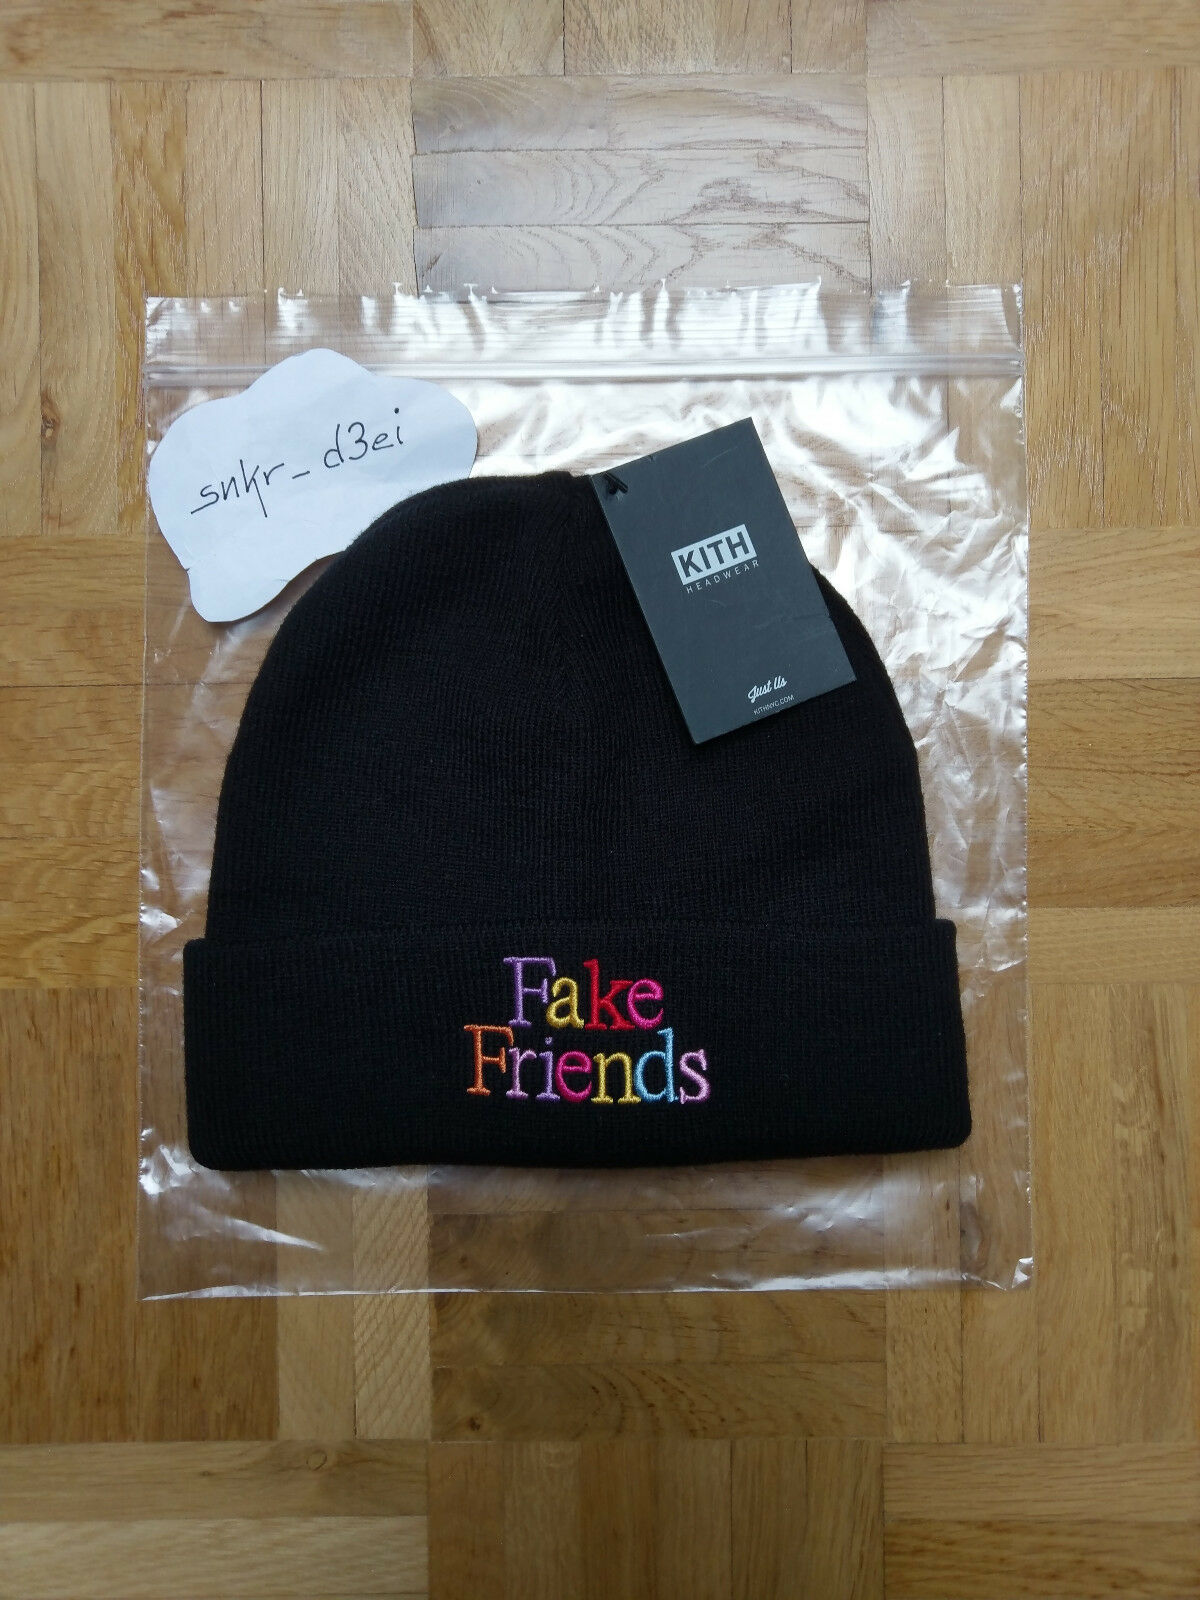 Kith Us Fake Friends Beanie - Schwarz - Neu Neu Neu + Tags | Export